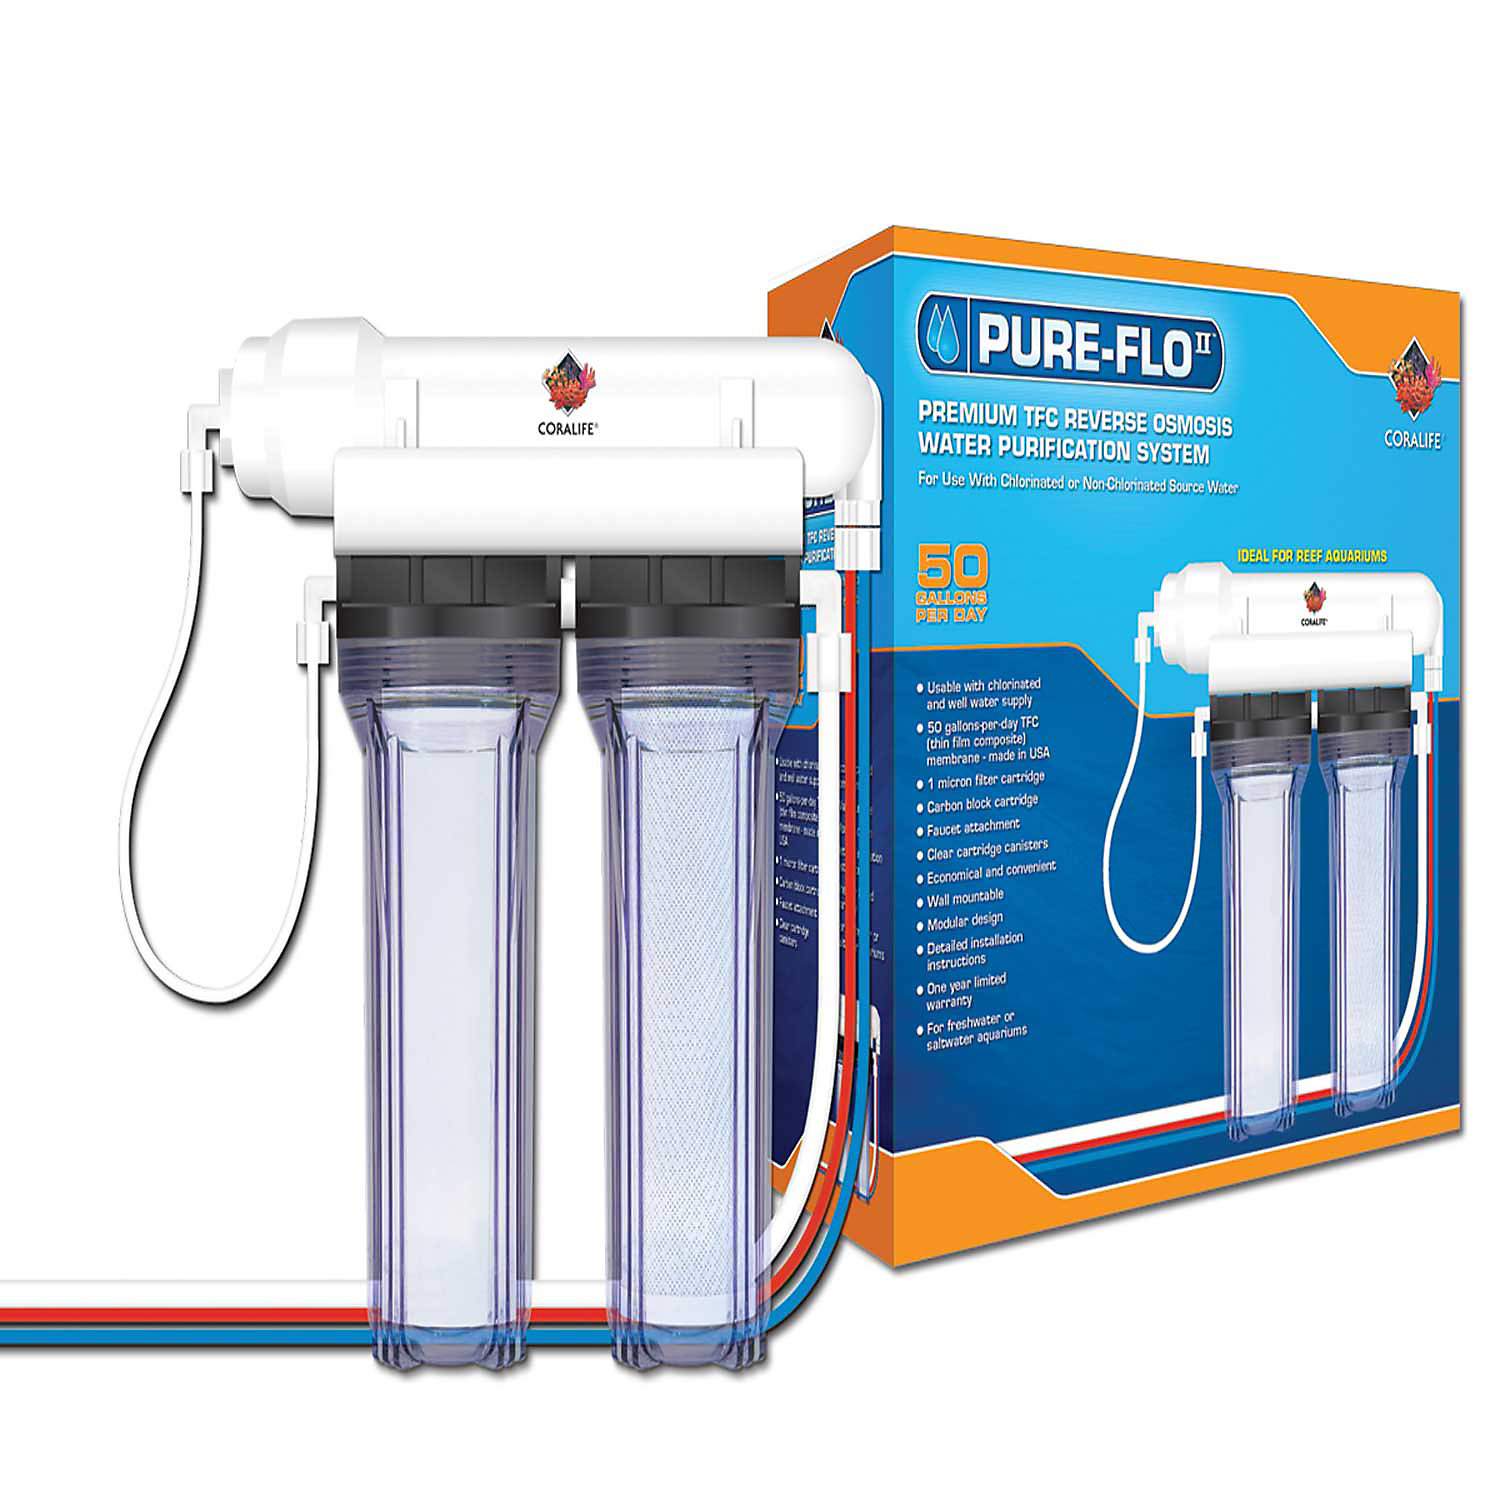 Coralife Pure Flo II Reverse Osmosis 2 Canister System, 15.2 L X 7.8 W X 16.6 H